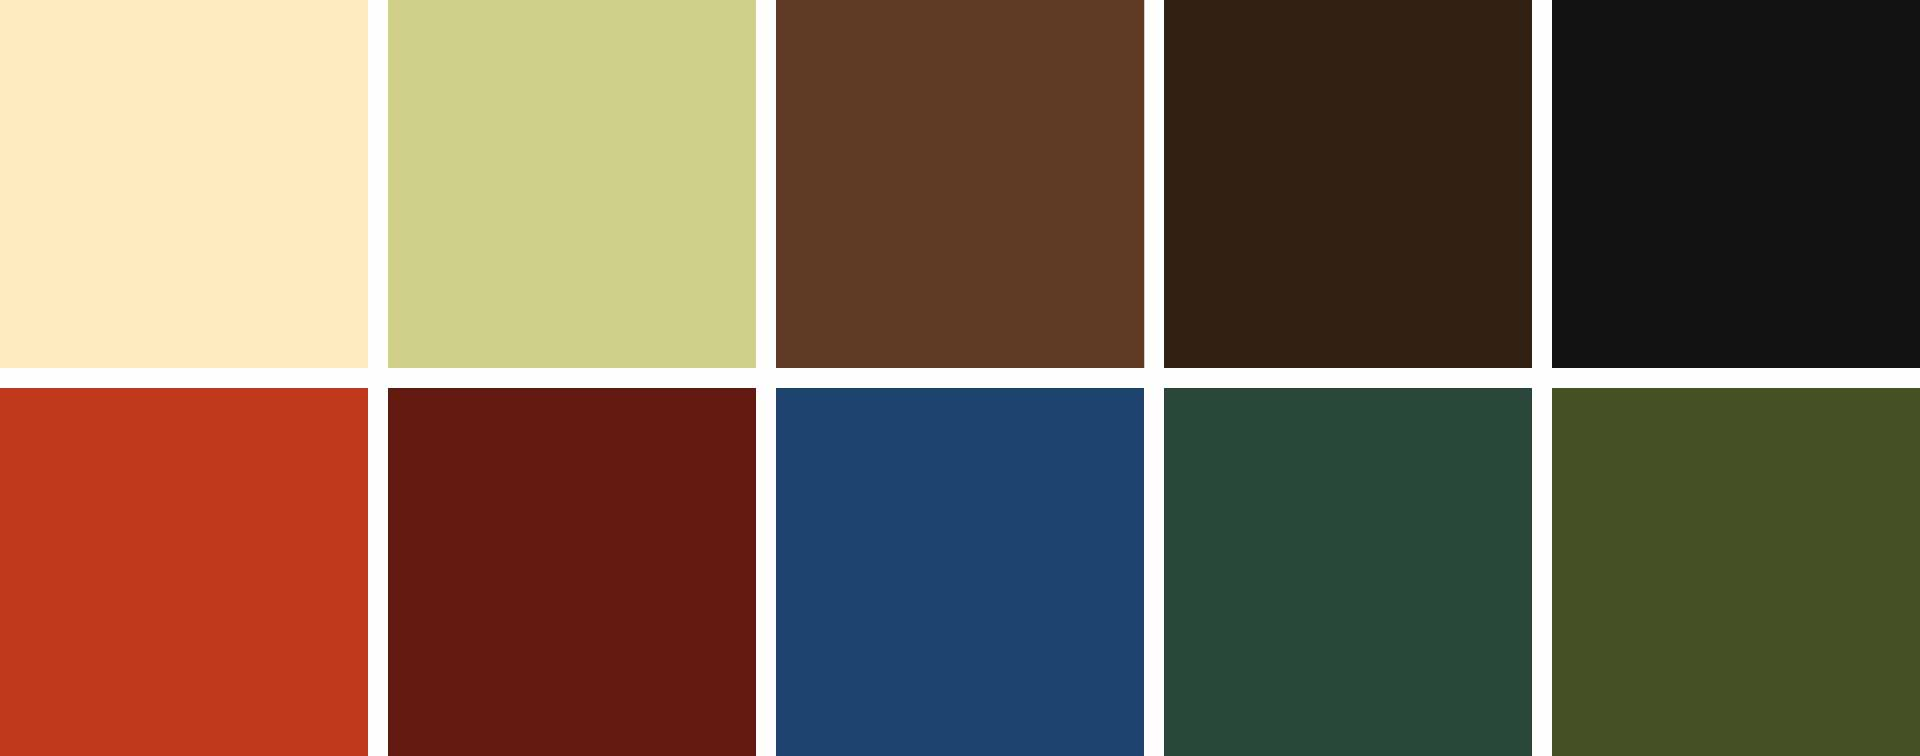 Deep rich color palette having  royal tones of red, burgundy and blue and pastels of mint and yellow.